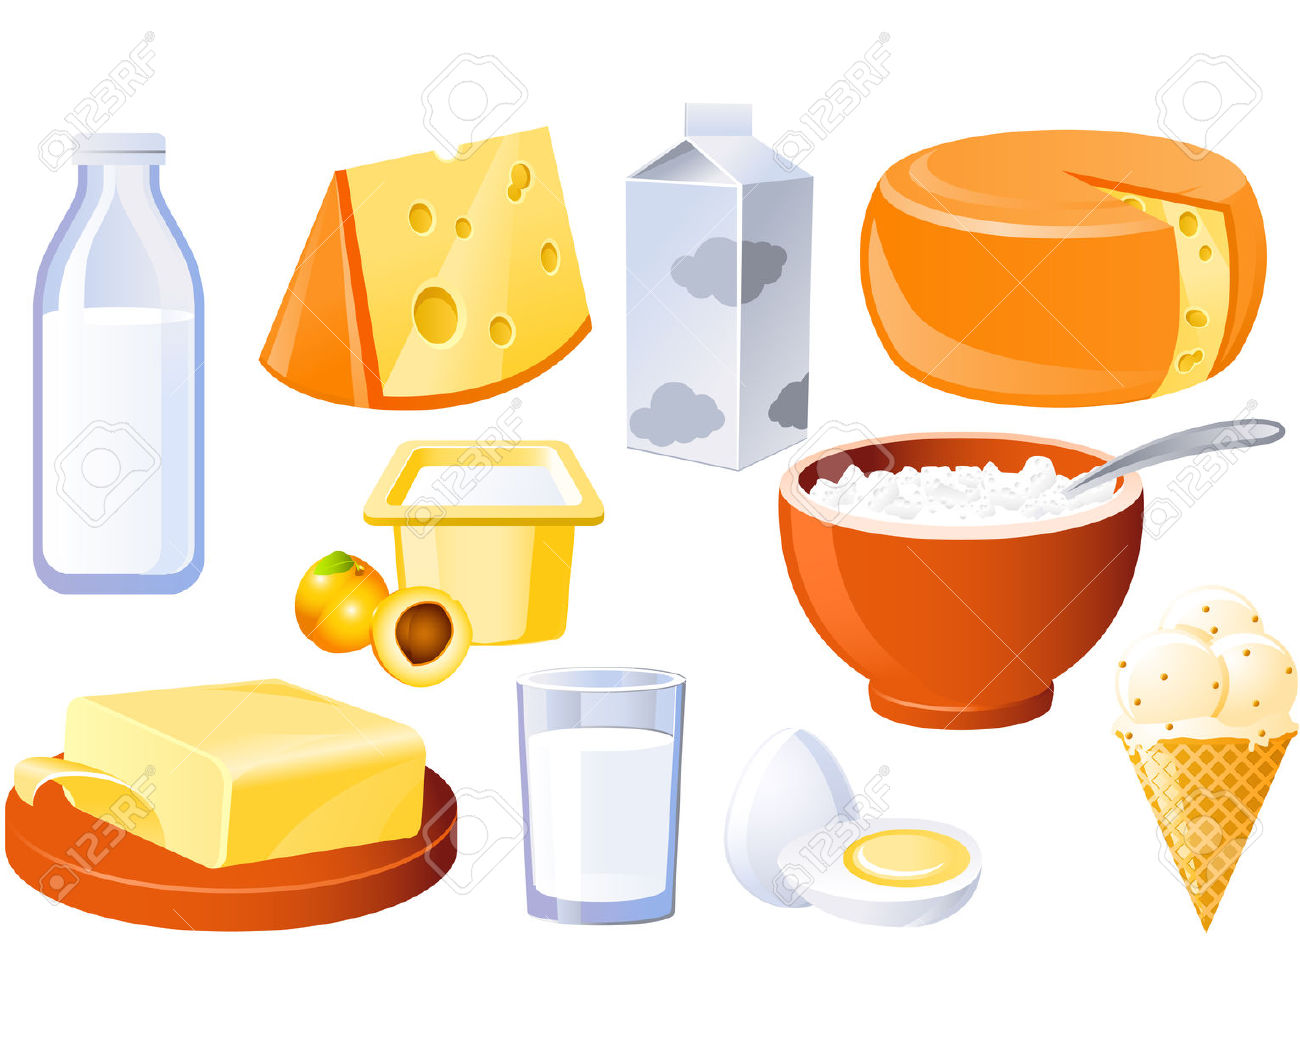 683 Cottage Cheese Stock Illustrations, Cliparts And Royalty Free.